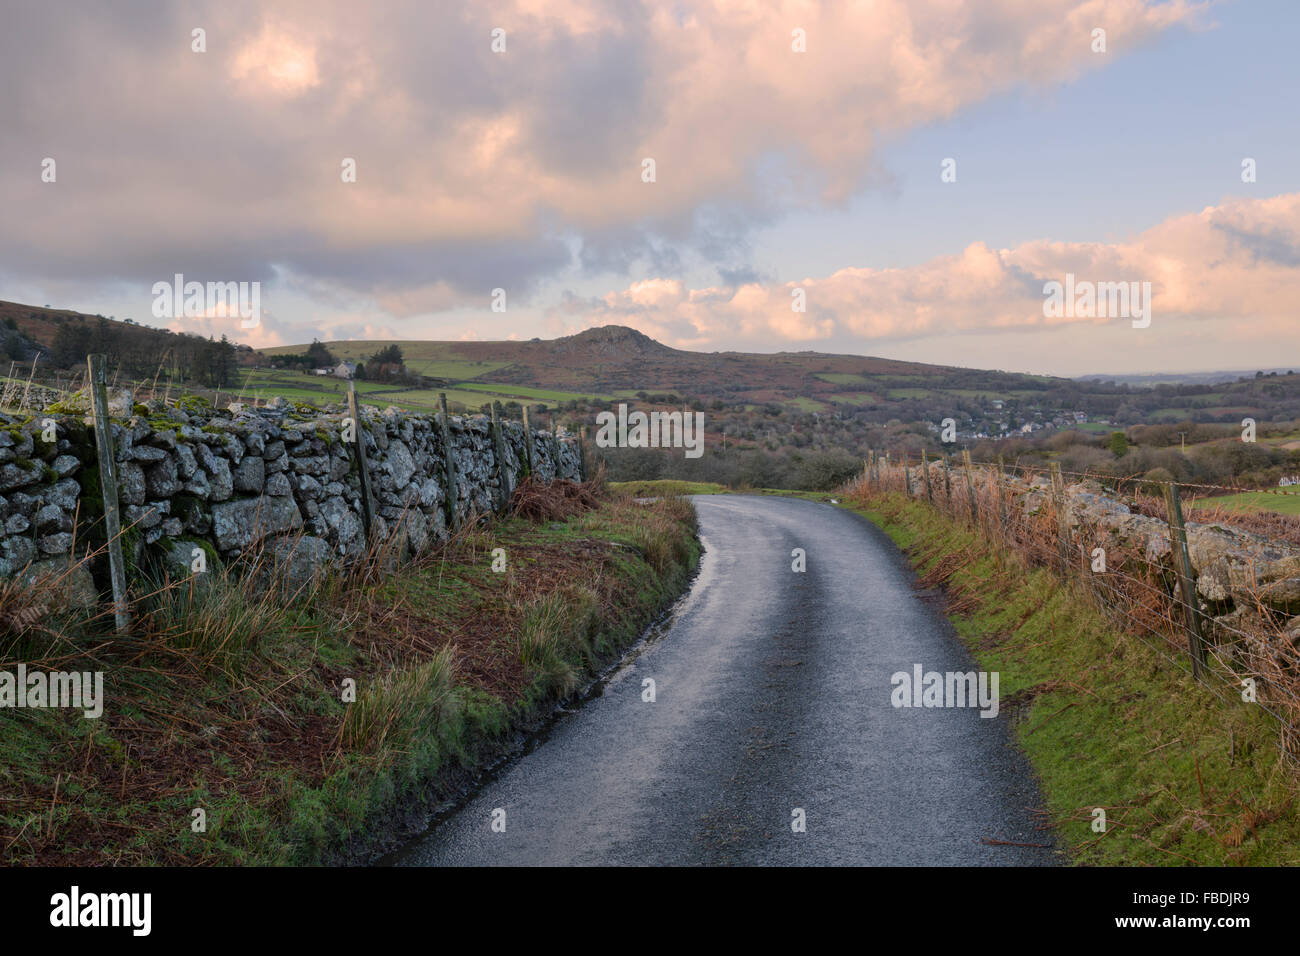 The winding road from Minions to Henwood on Bodmin Moor - Stock Image